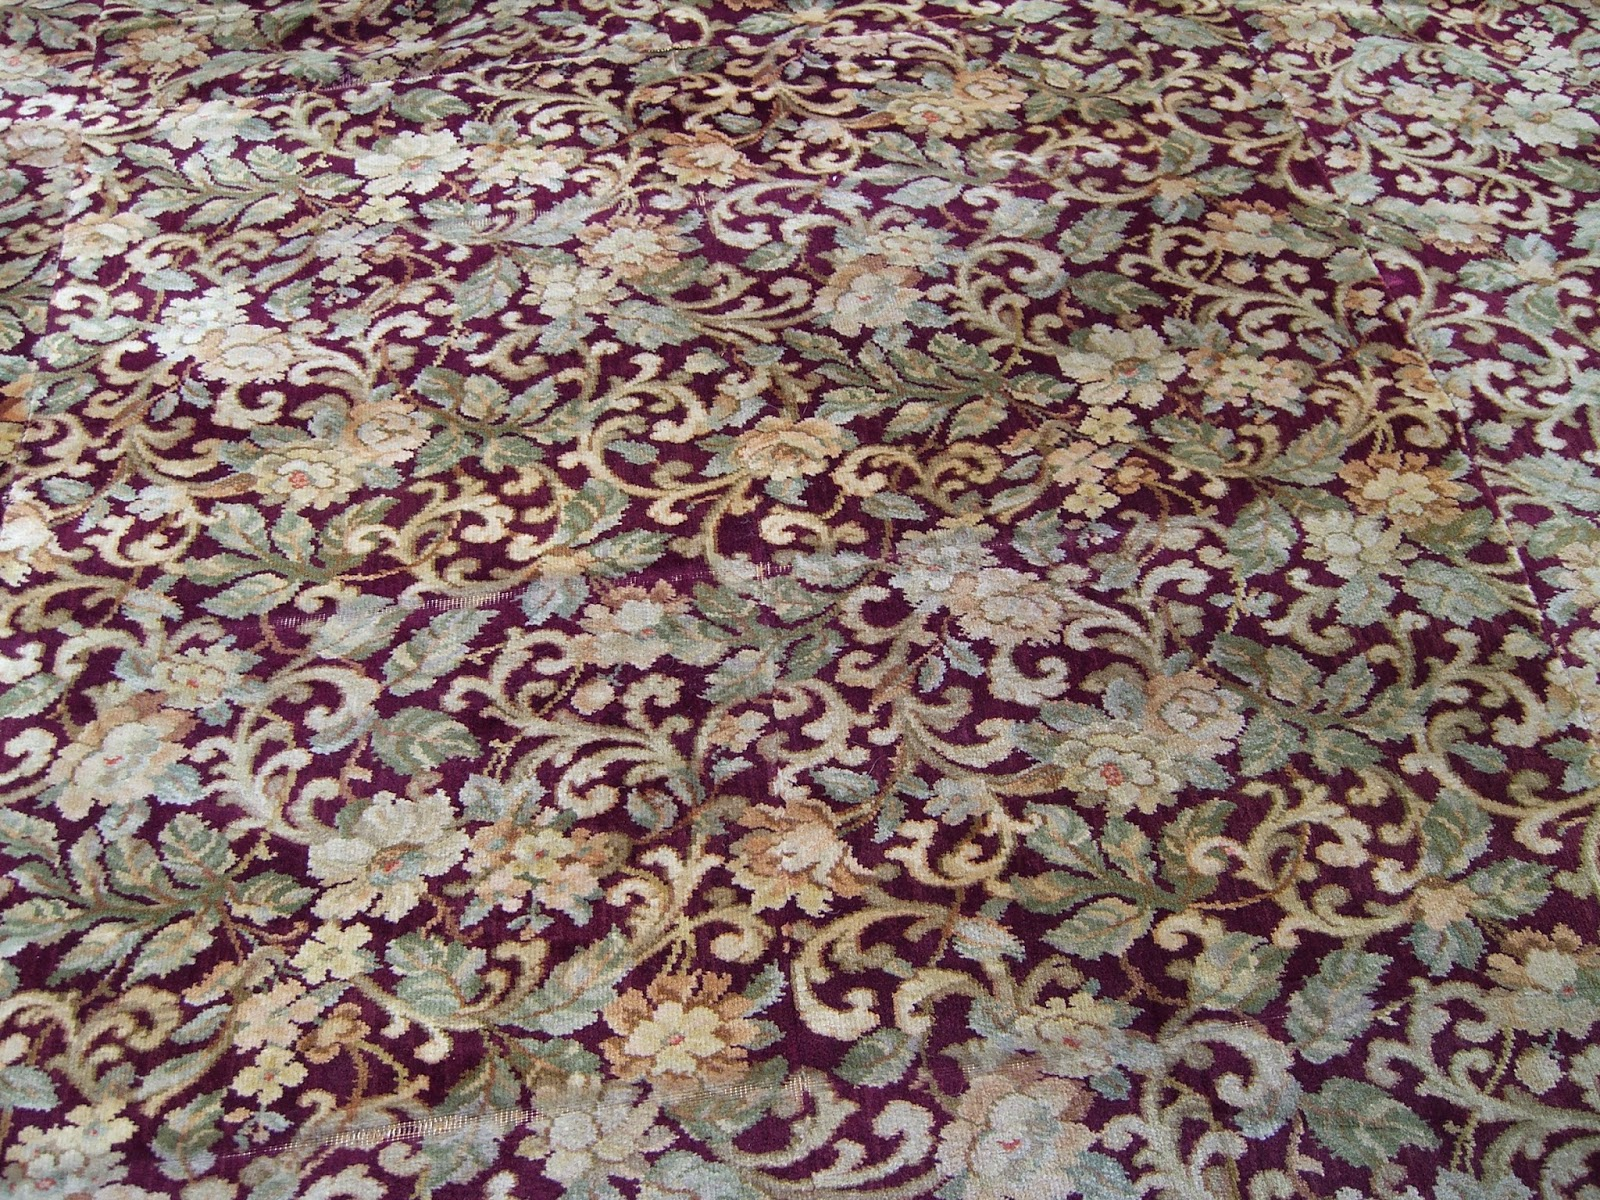 Woven Carpets Types Many Carpet Types Were Hand